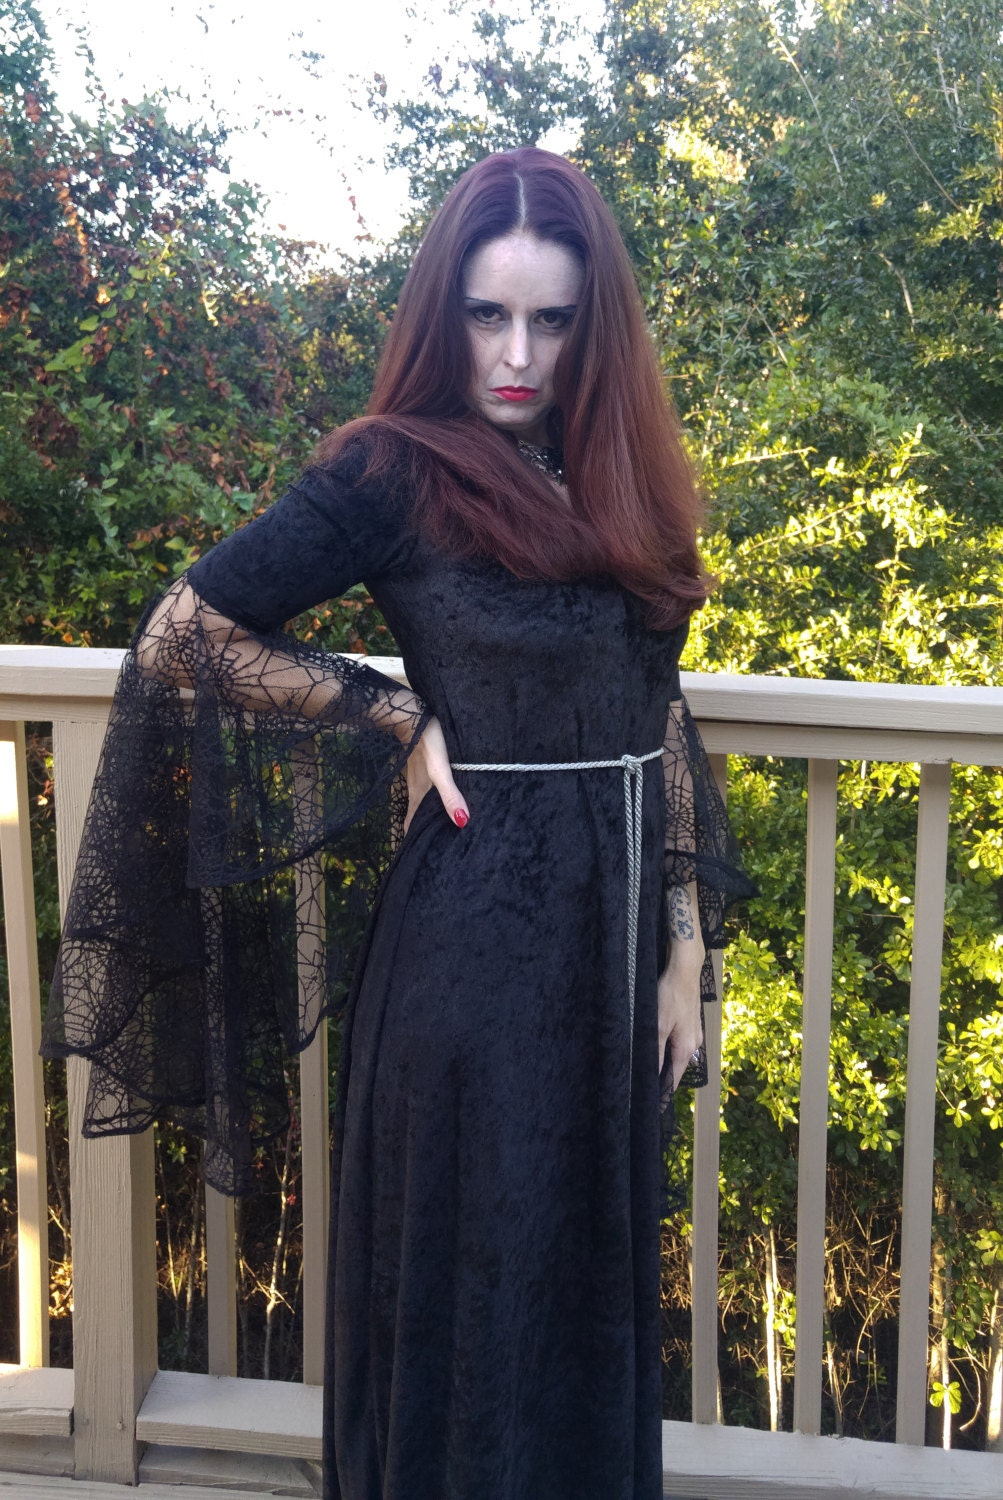 Halloween DressMedieval GownElvish DressGothic Dress Pagan Gown spider web lace